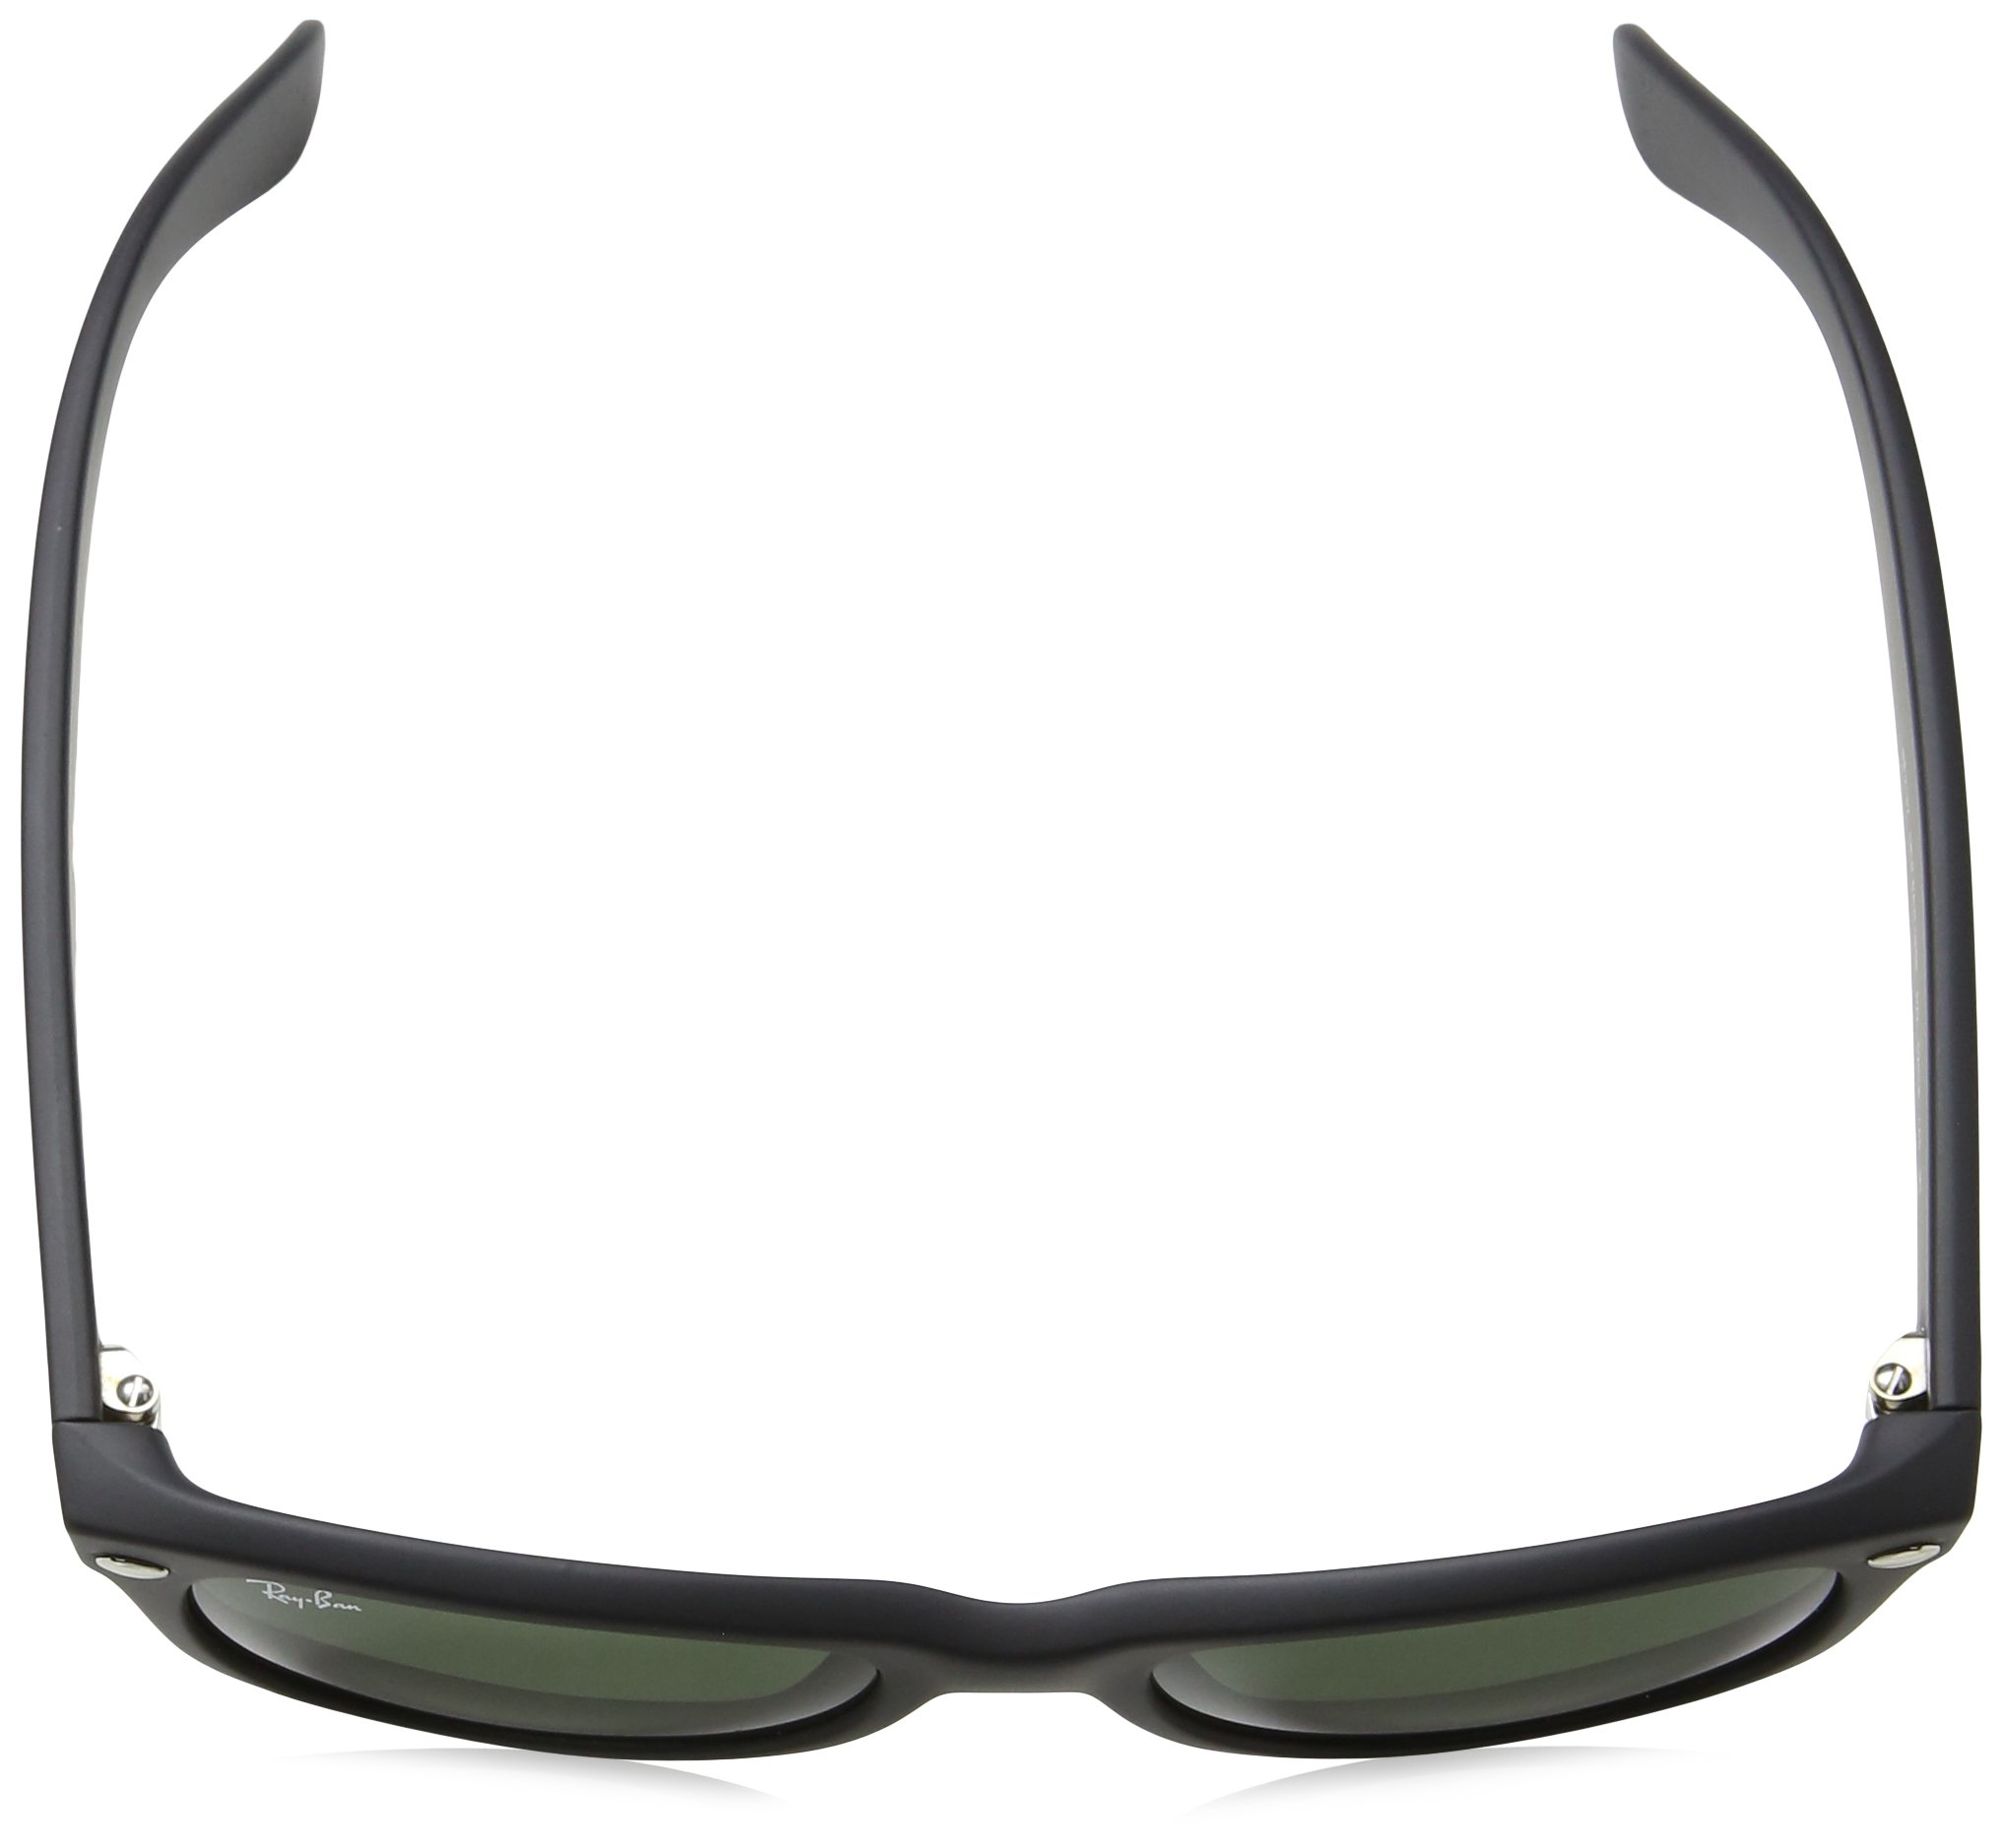 Ray-Ban RB2132 New Wayfarer Sunglasses, Black (622), 52 mm by Ray-Ban (Image #4)